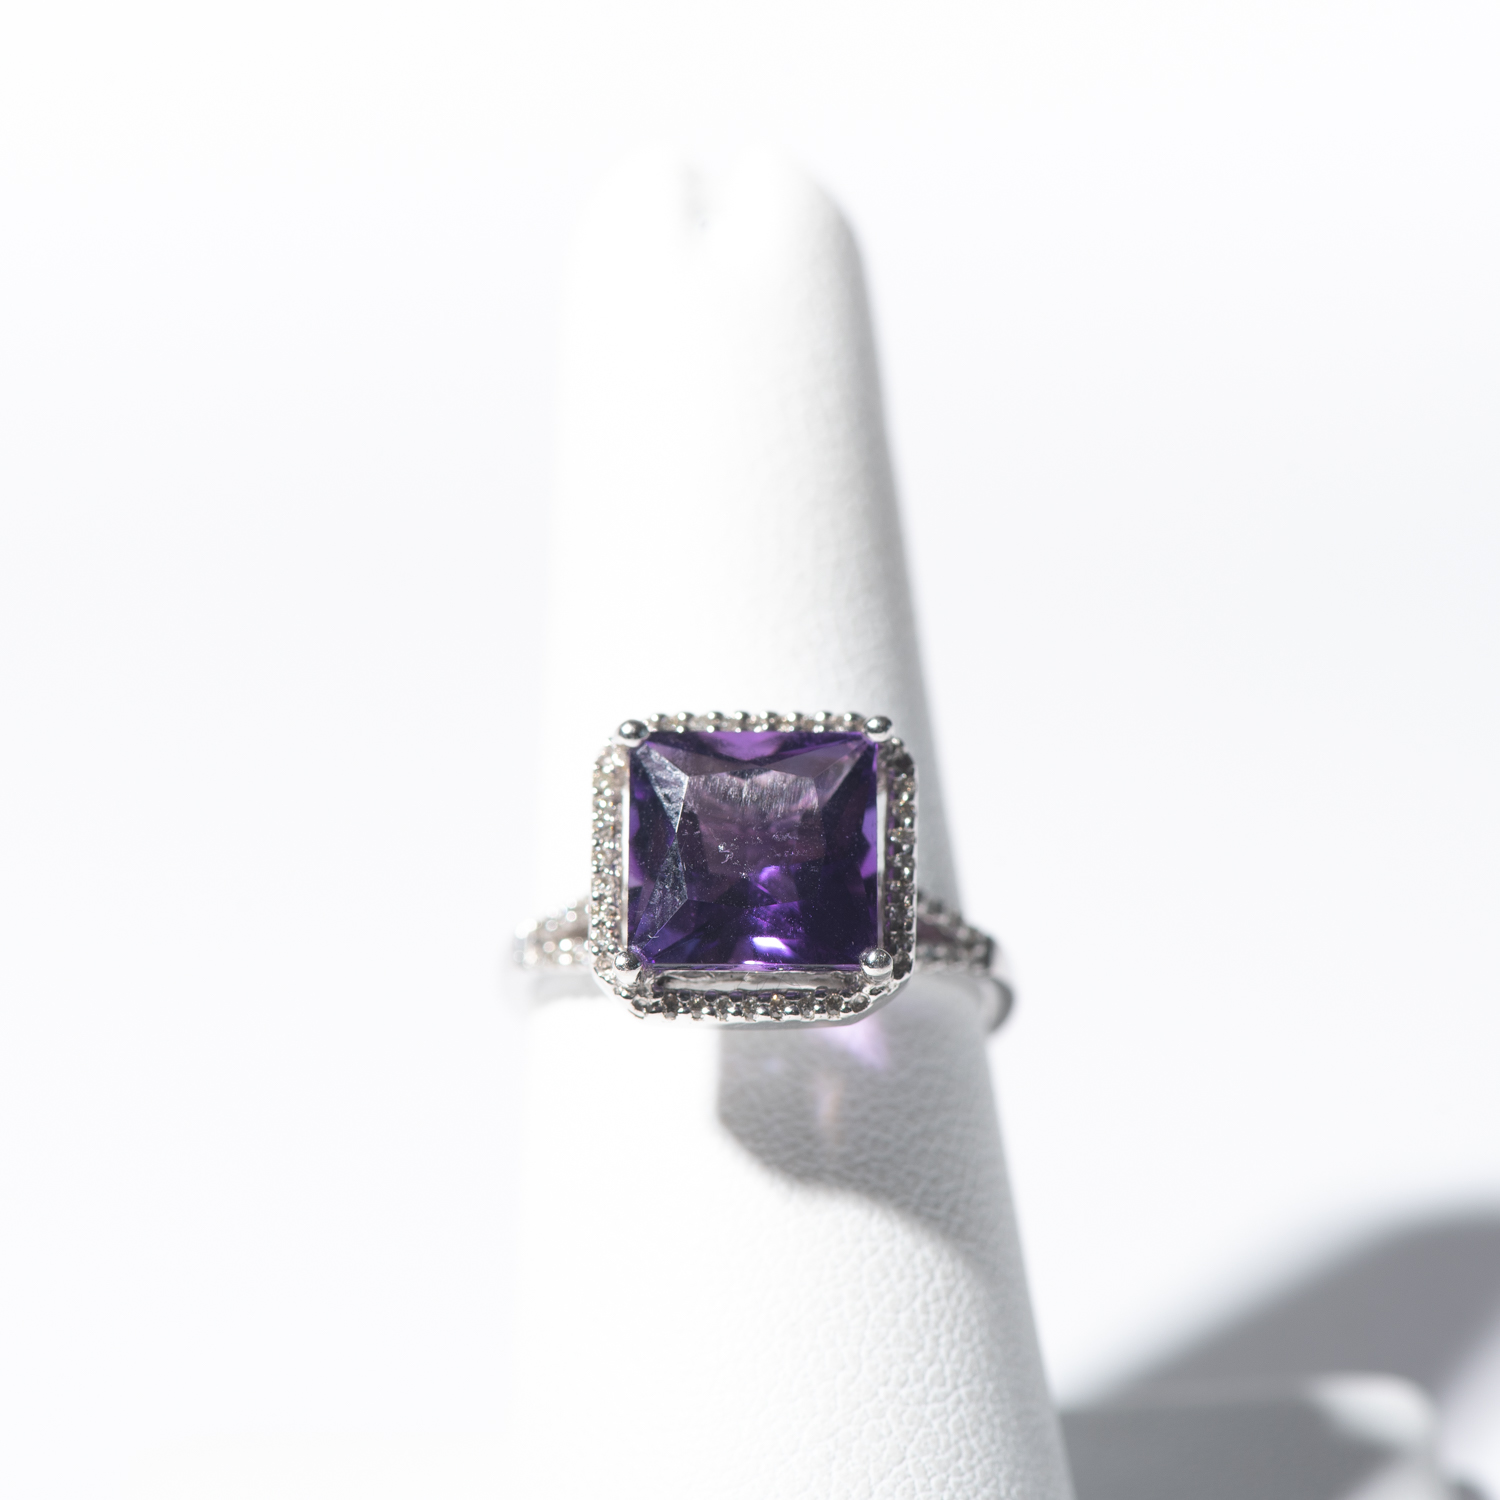 Design Seventeen. - Amethyst Ring with Square Halo and Diamond Accents Set in 14K White Gold